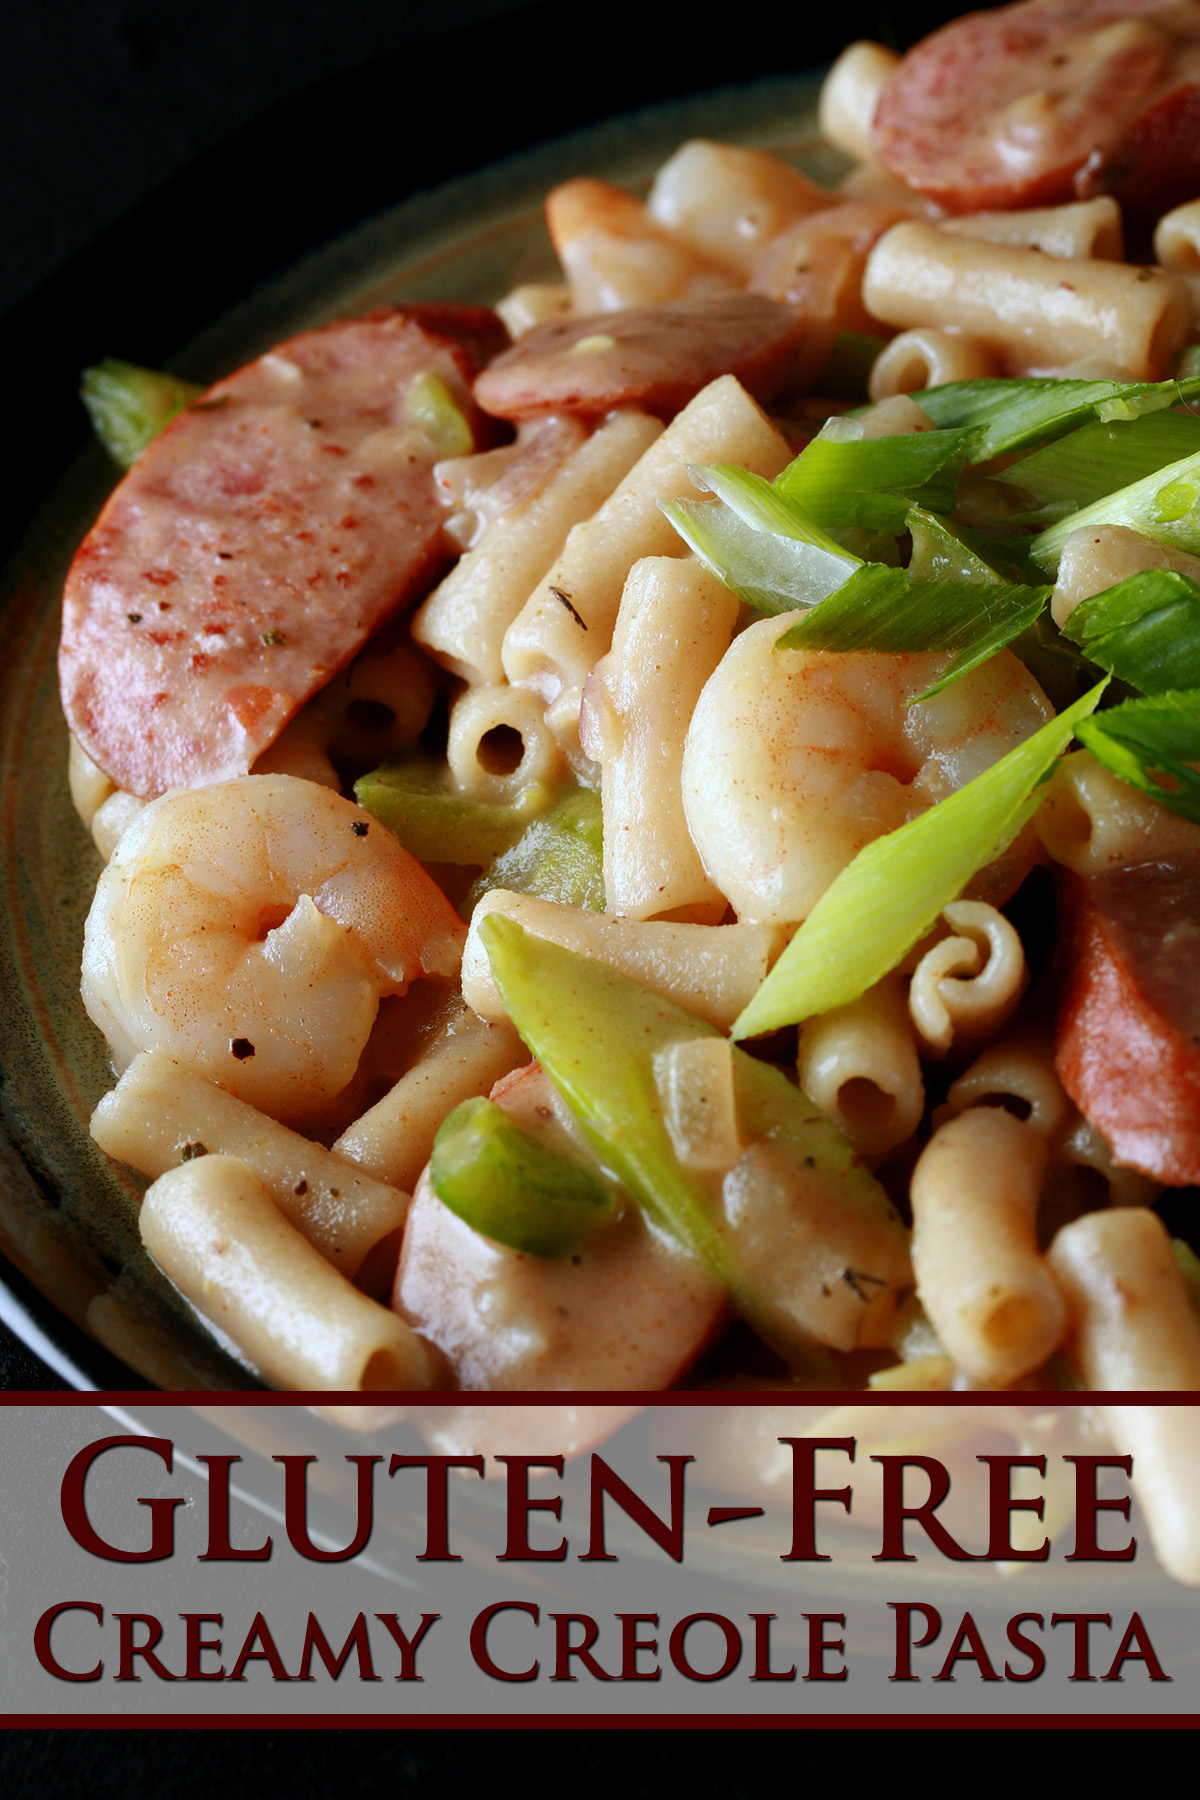 A plate of gluten-Free Creamy Creole Pasta.  Shrimp, chicken, sausage, and celery are visible.